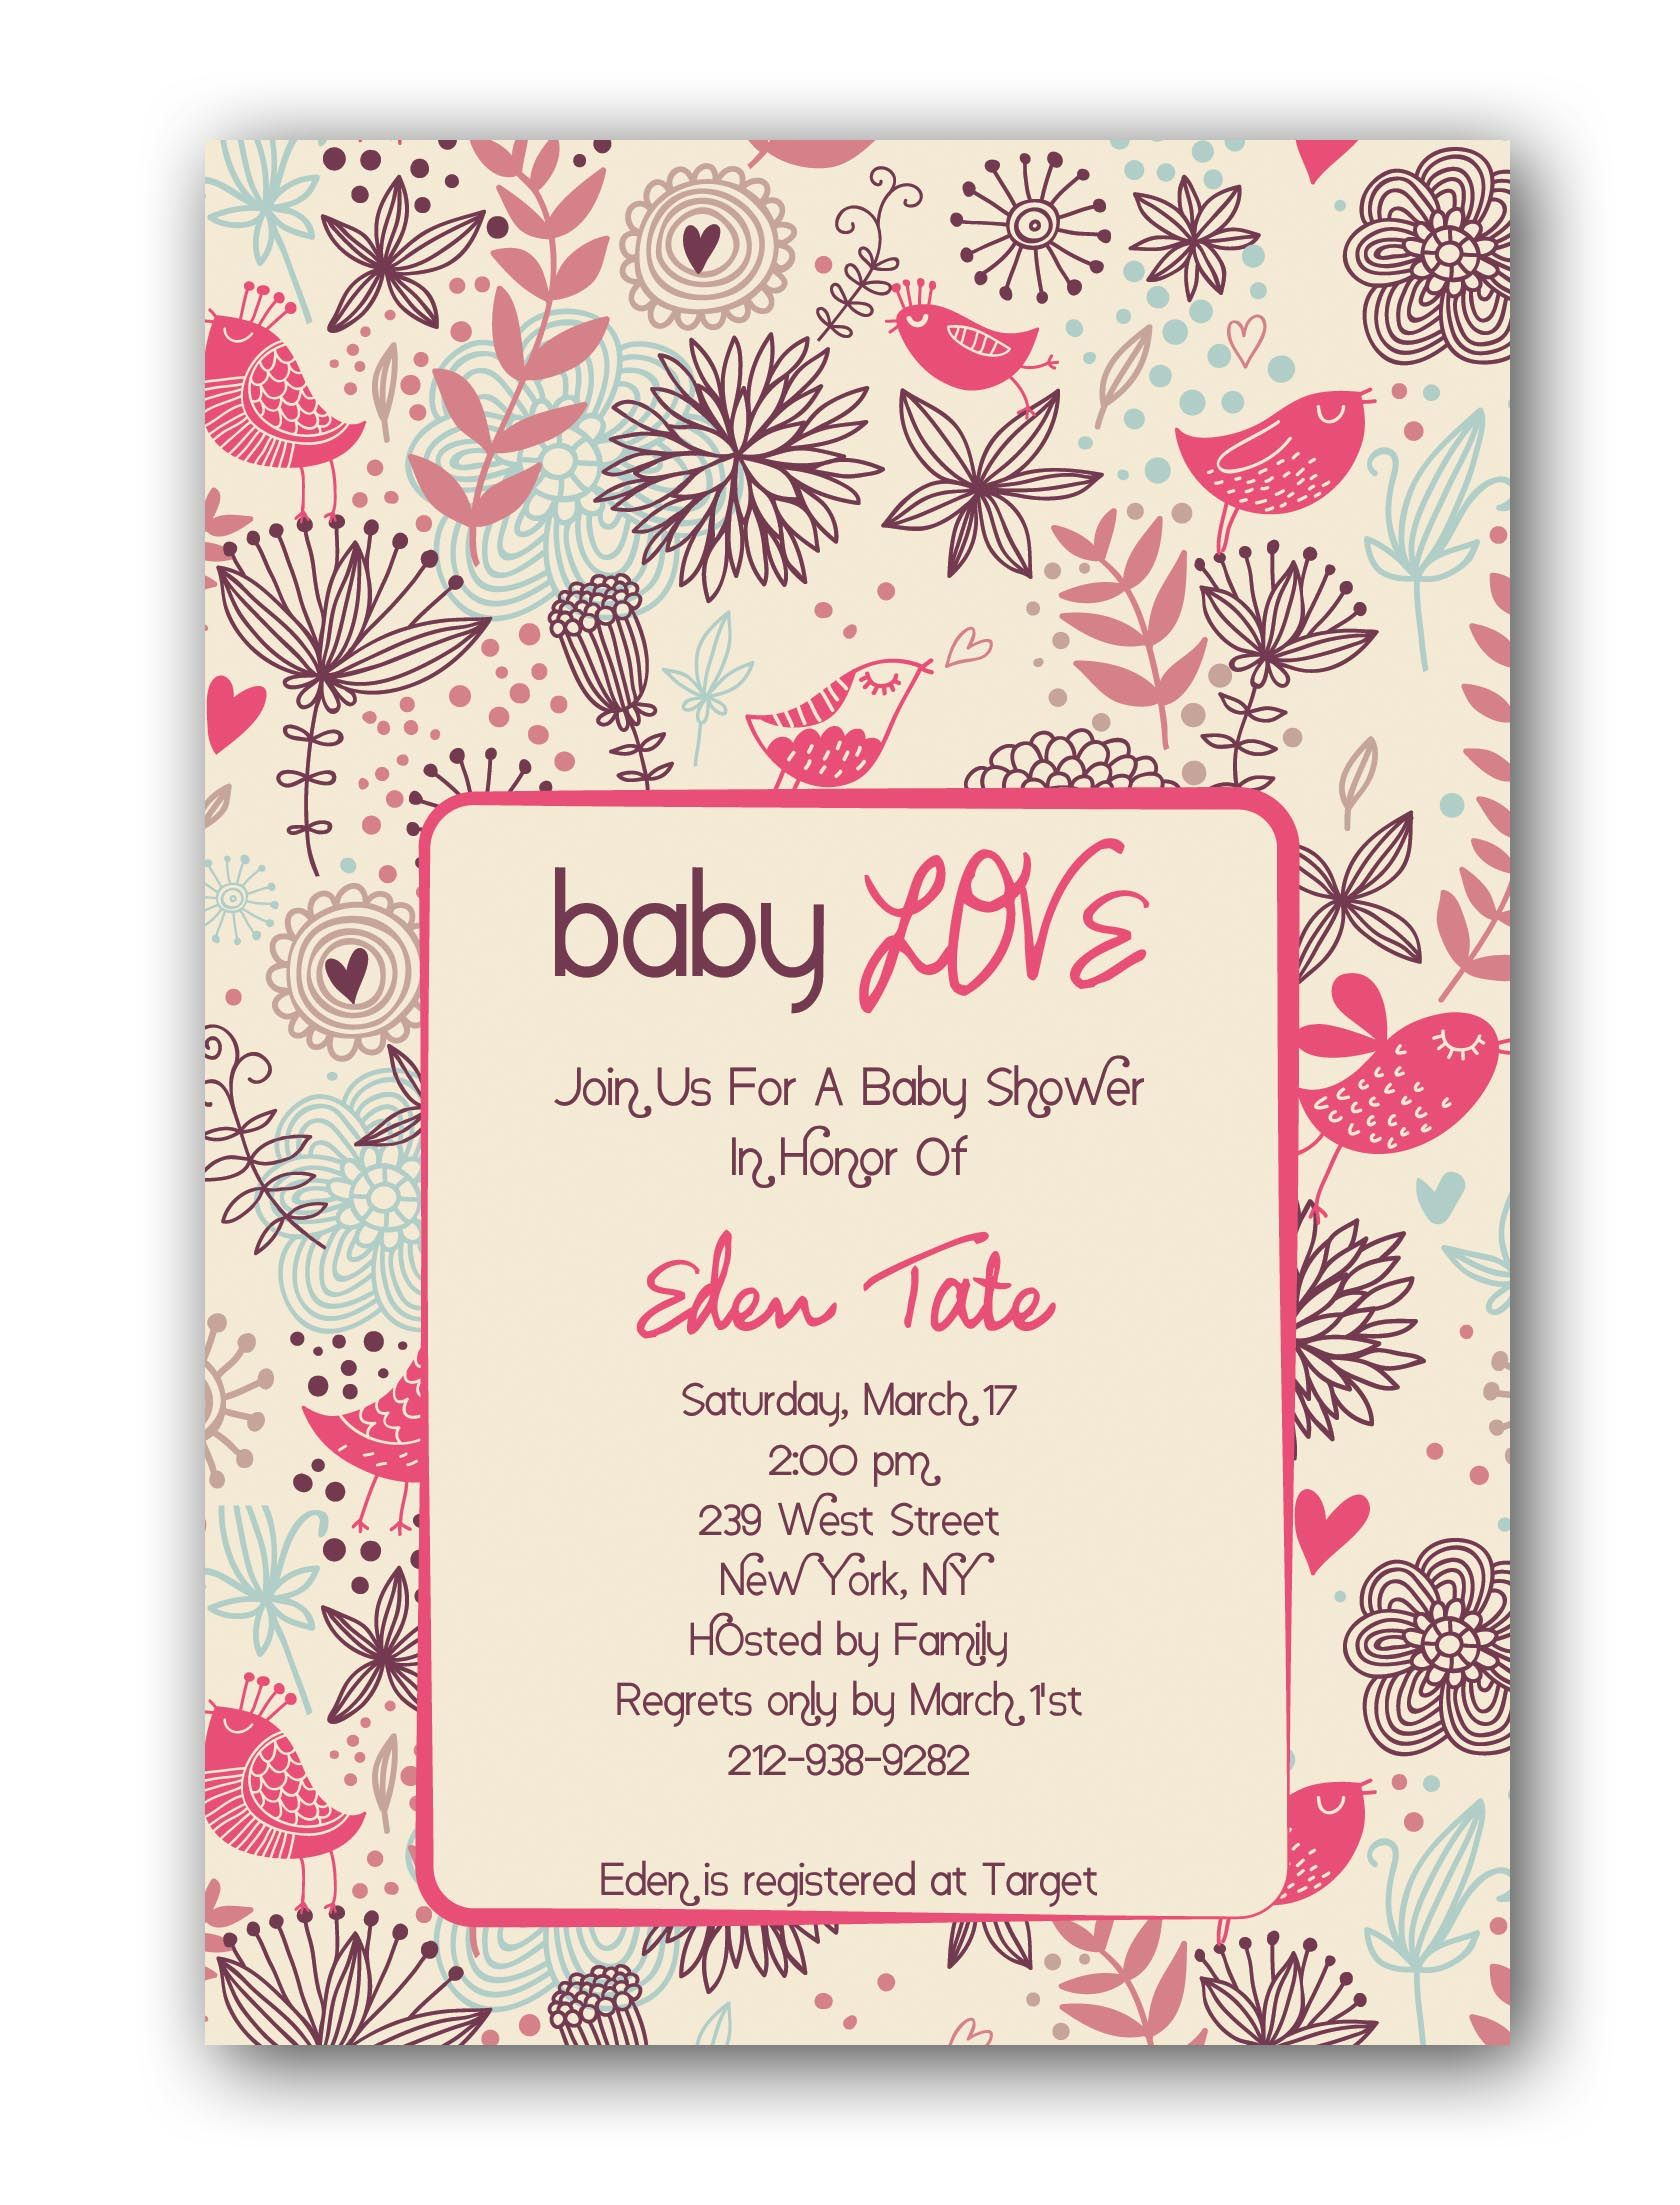 Cute Baby Shower Invitations for Girls Image | Baby shower ...